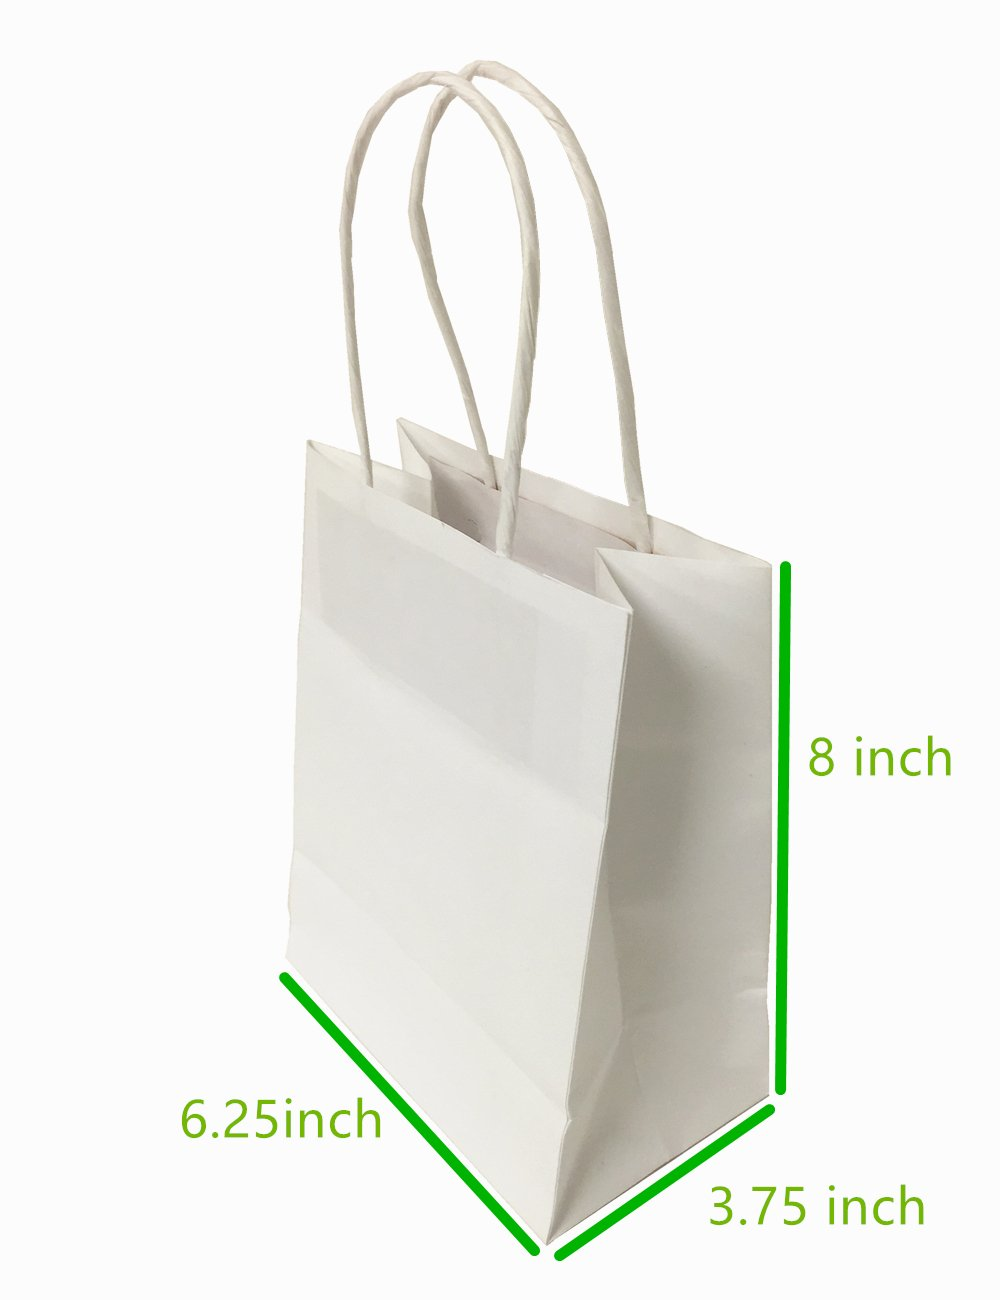 Metrogalaxy 6.25''X3.75''X8'' Small Kraft Paper Bags, Party Bags, Shopping Bags with Handles, Color: White Bags, 50PC